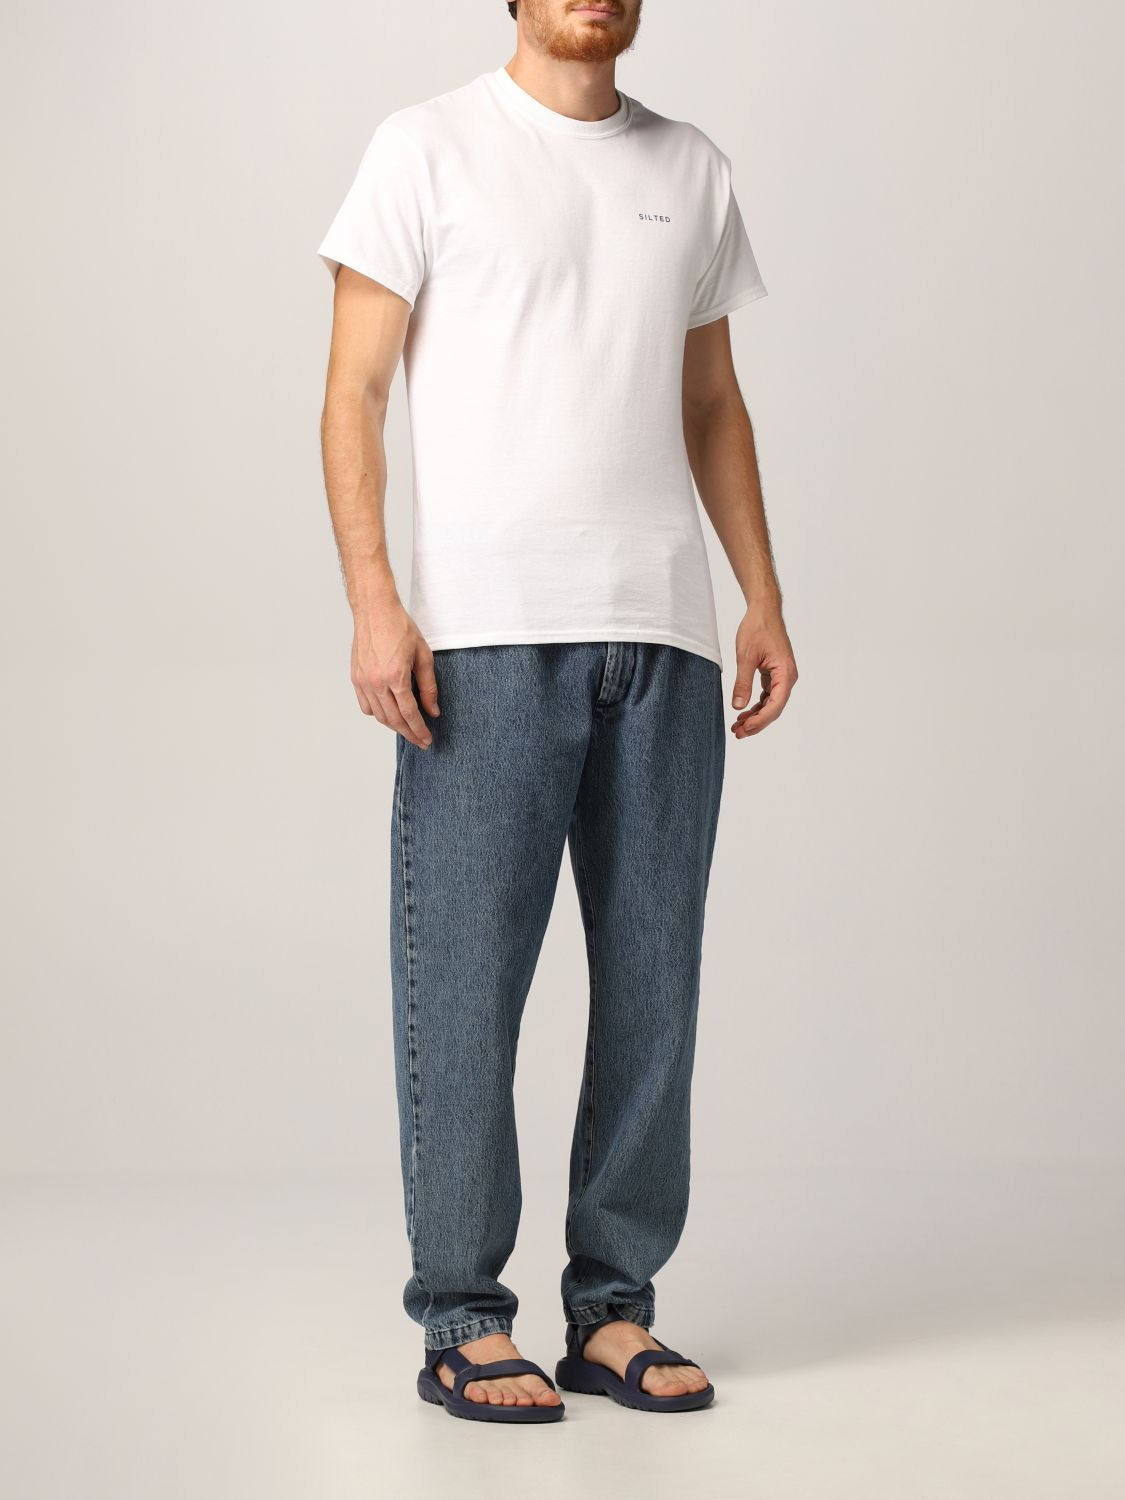 Jeans Silted: Jeans hombre Silted azul oscuro 2